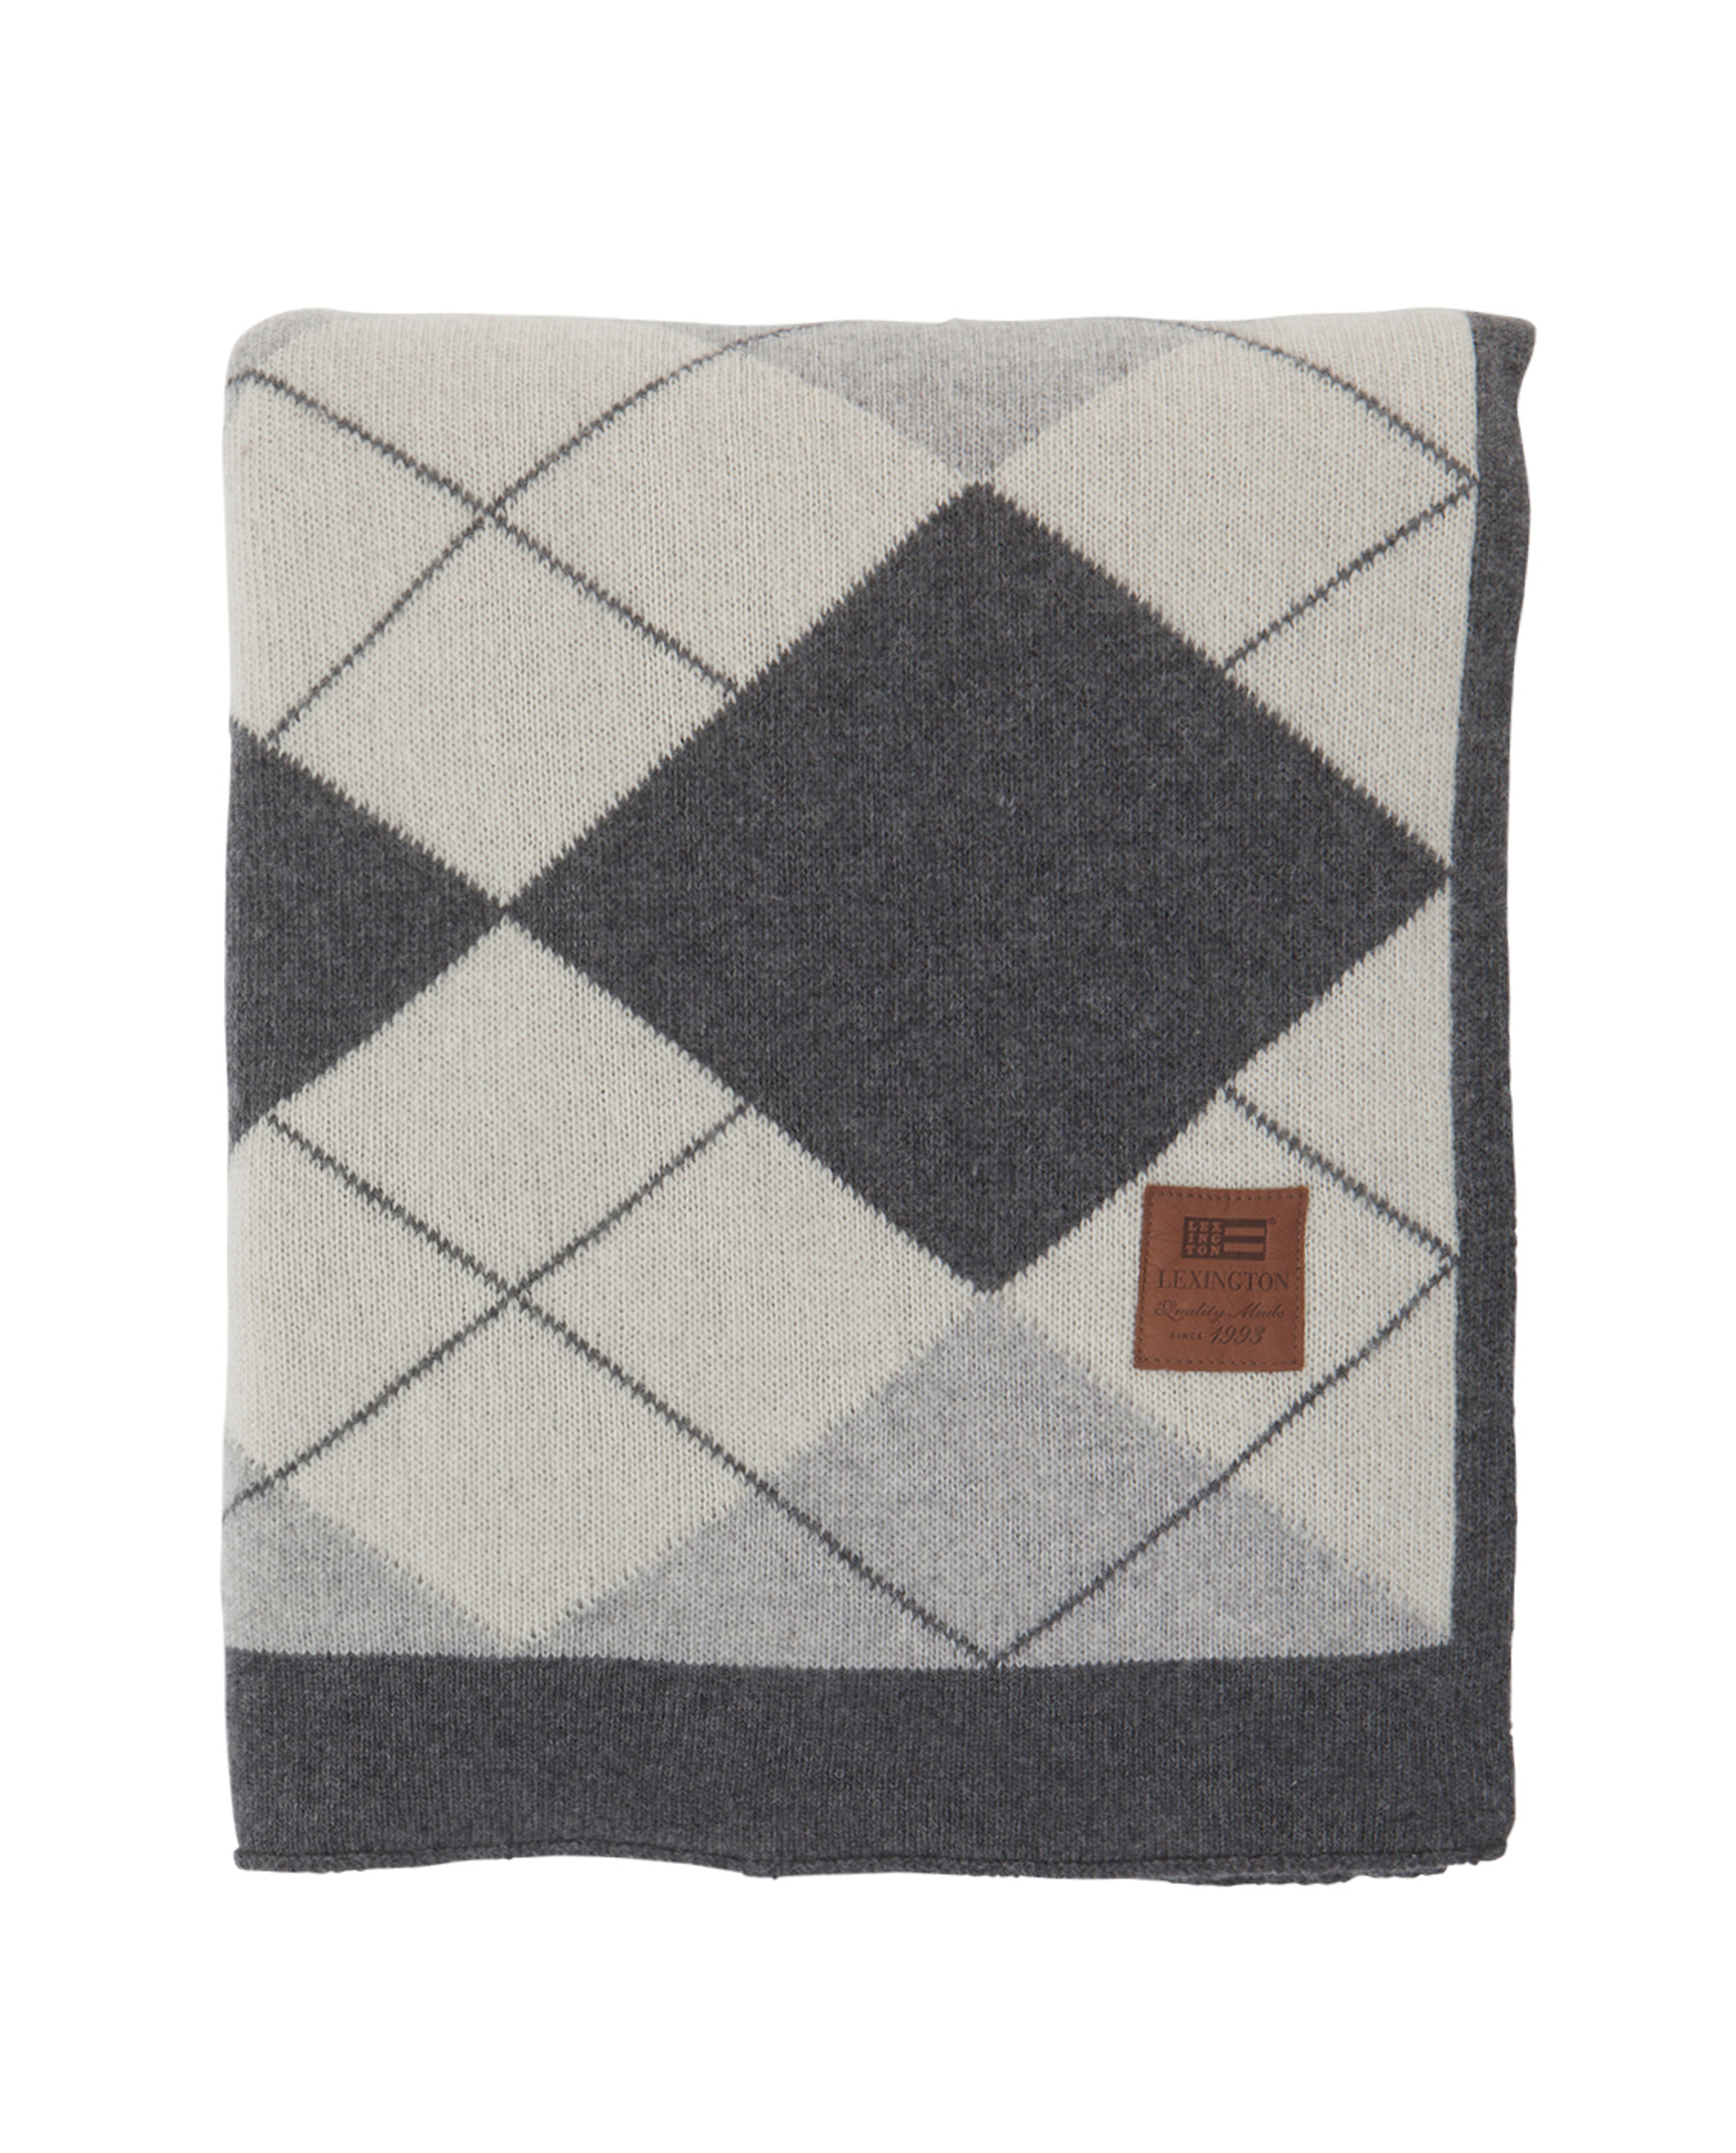 Holiday Knitted Throw, Gray/White